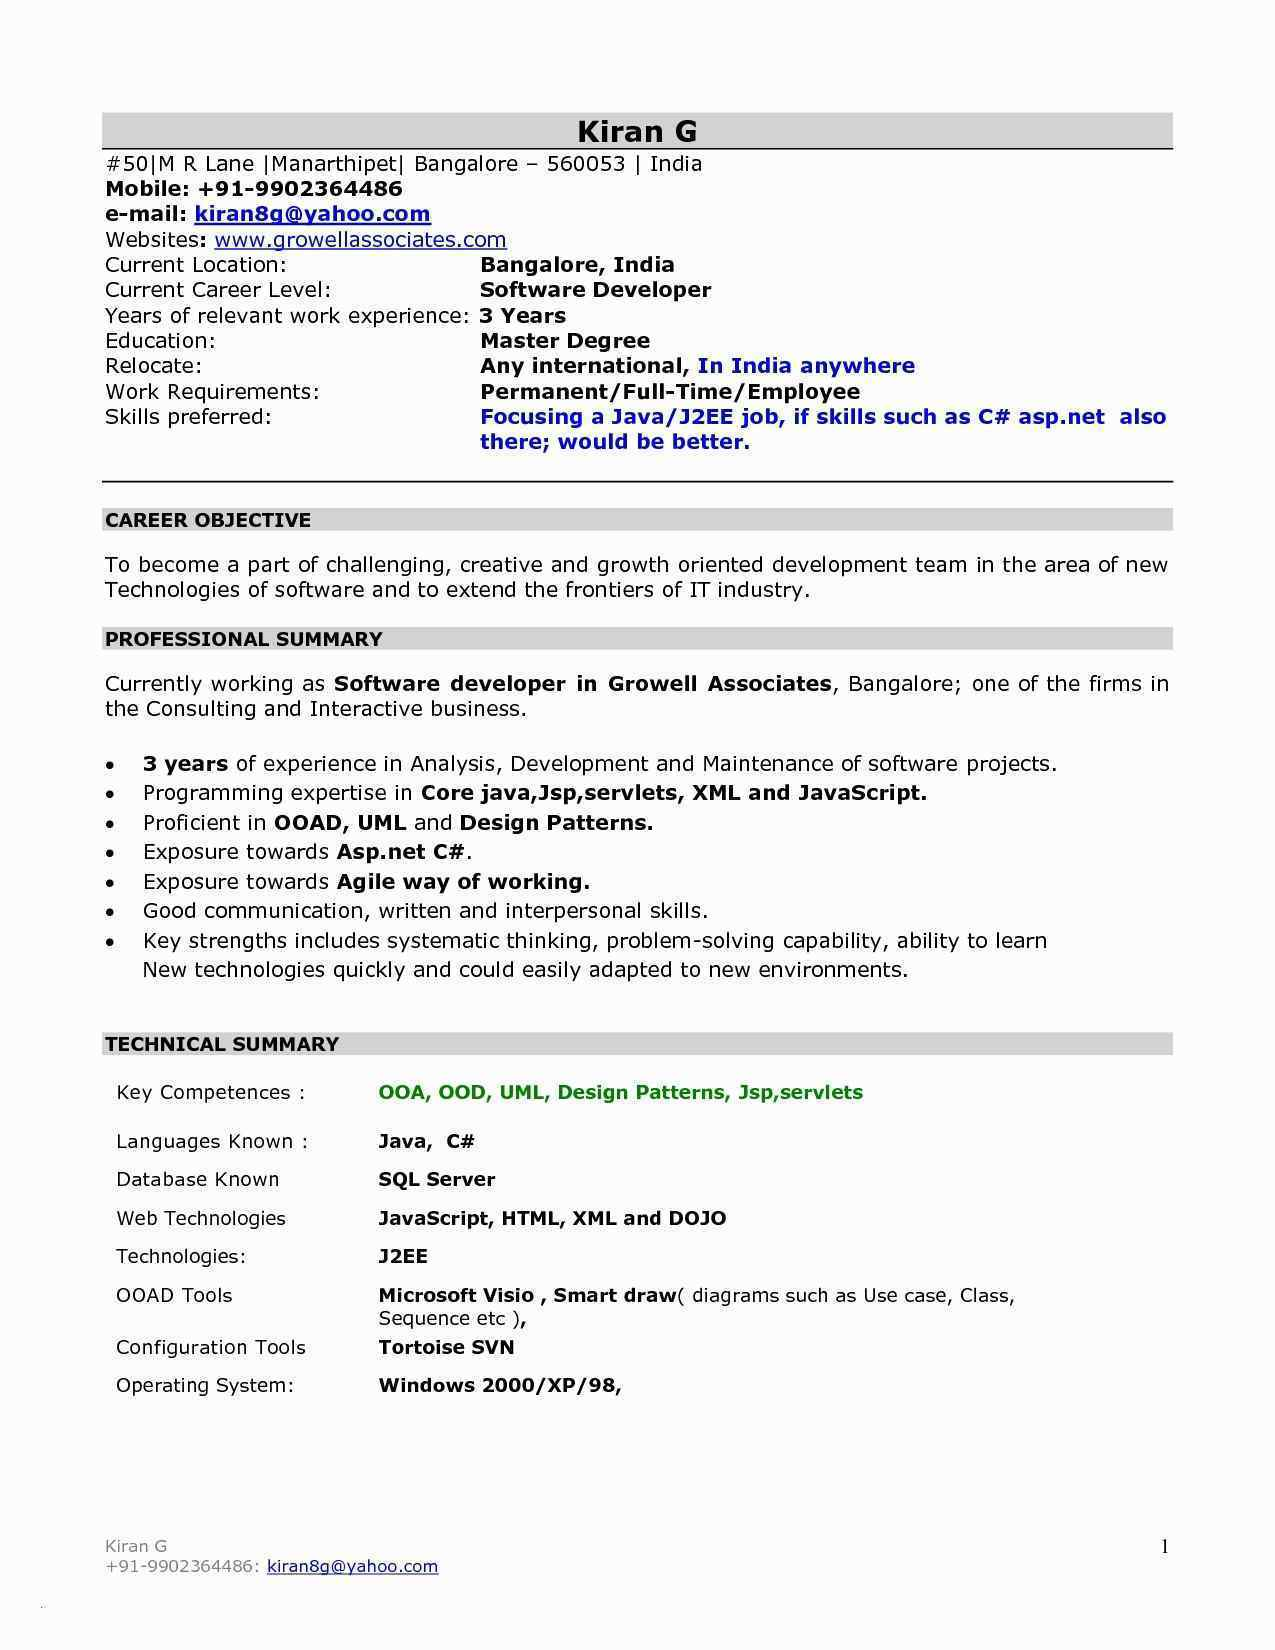 Resume Format For 1 Year Experienced Java Developer